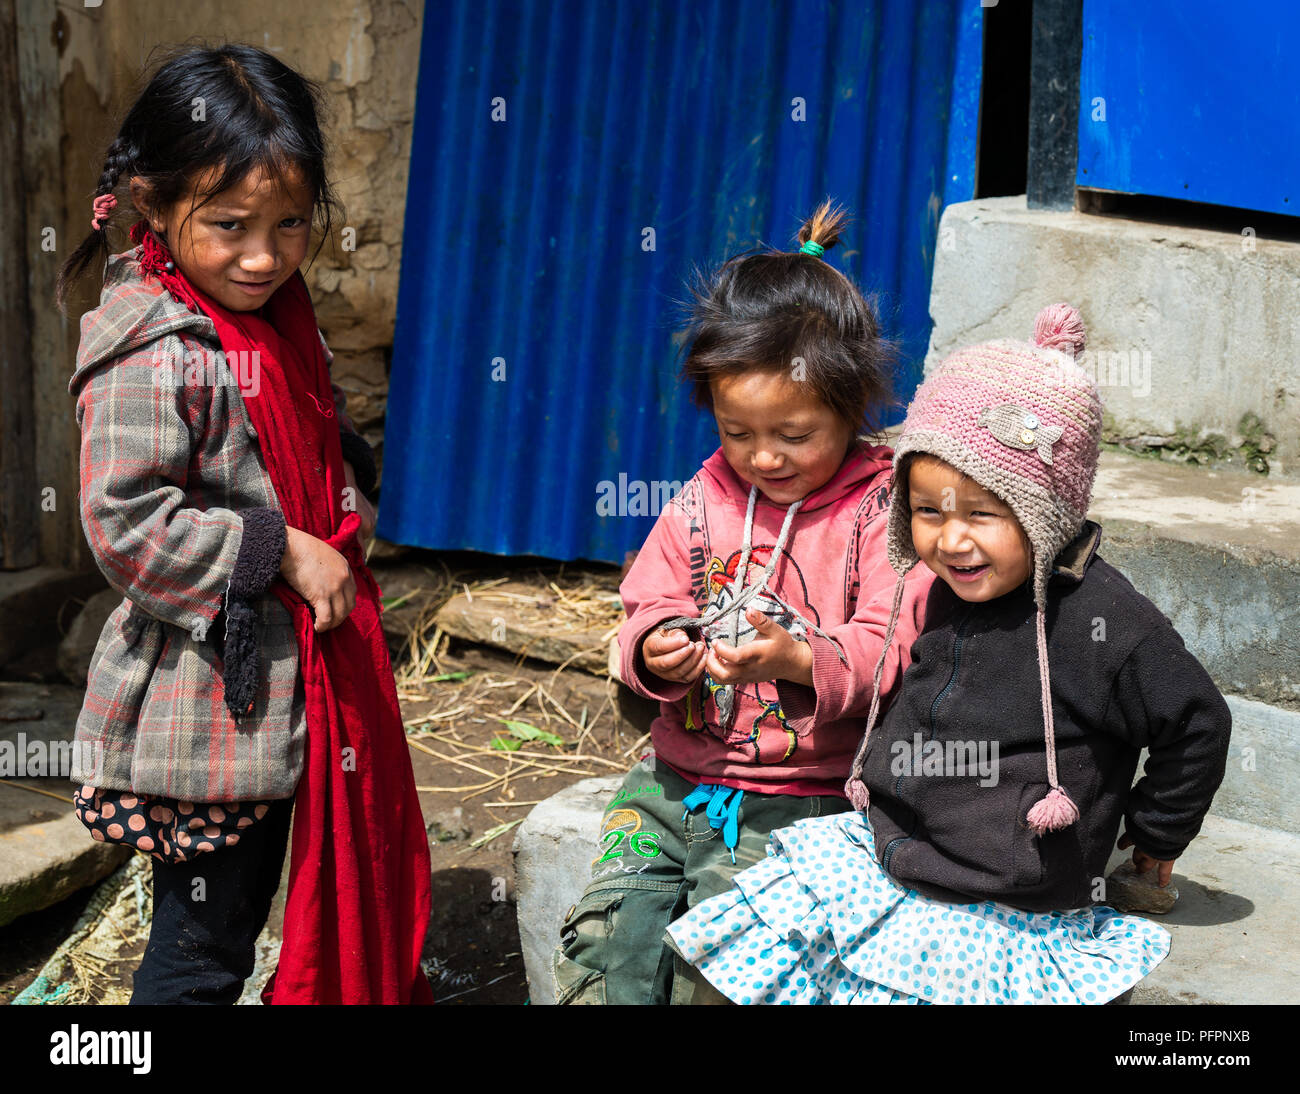 GHALEGAUN, NEPAL - CIRCA MAY 2018: Three young Nepali girls playing outside their home. - Stock Image